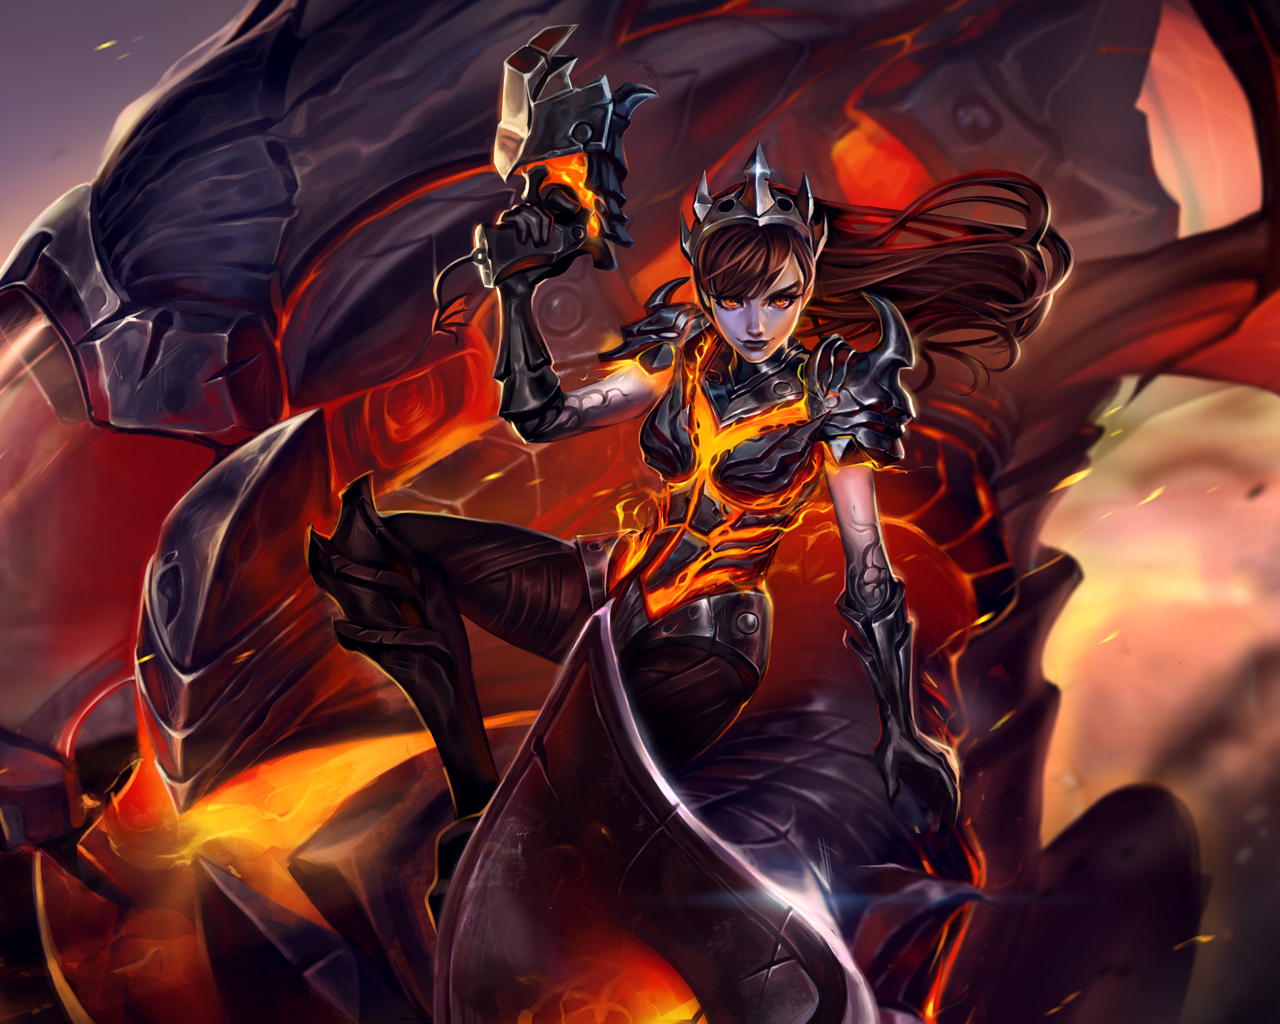 Heroes Of The Storm Wallpaper 1080p: Heroes Of The Storm